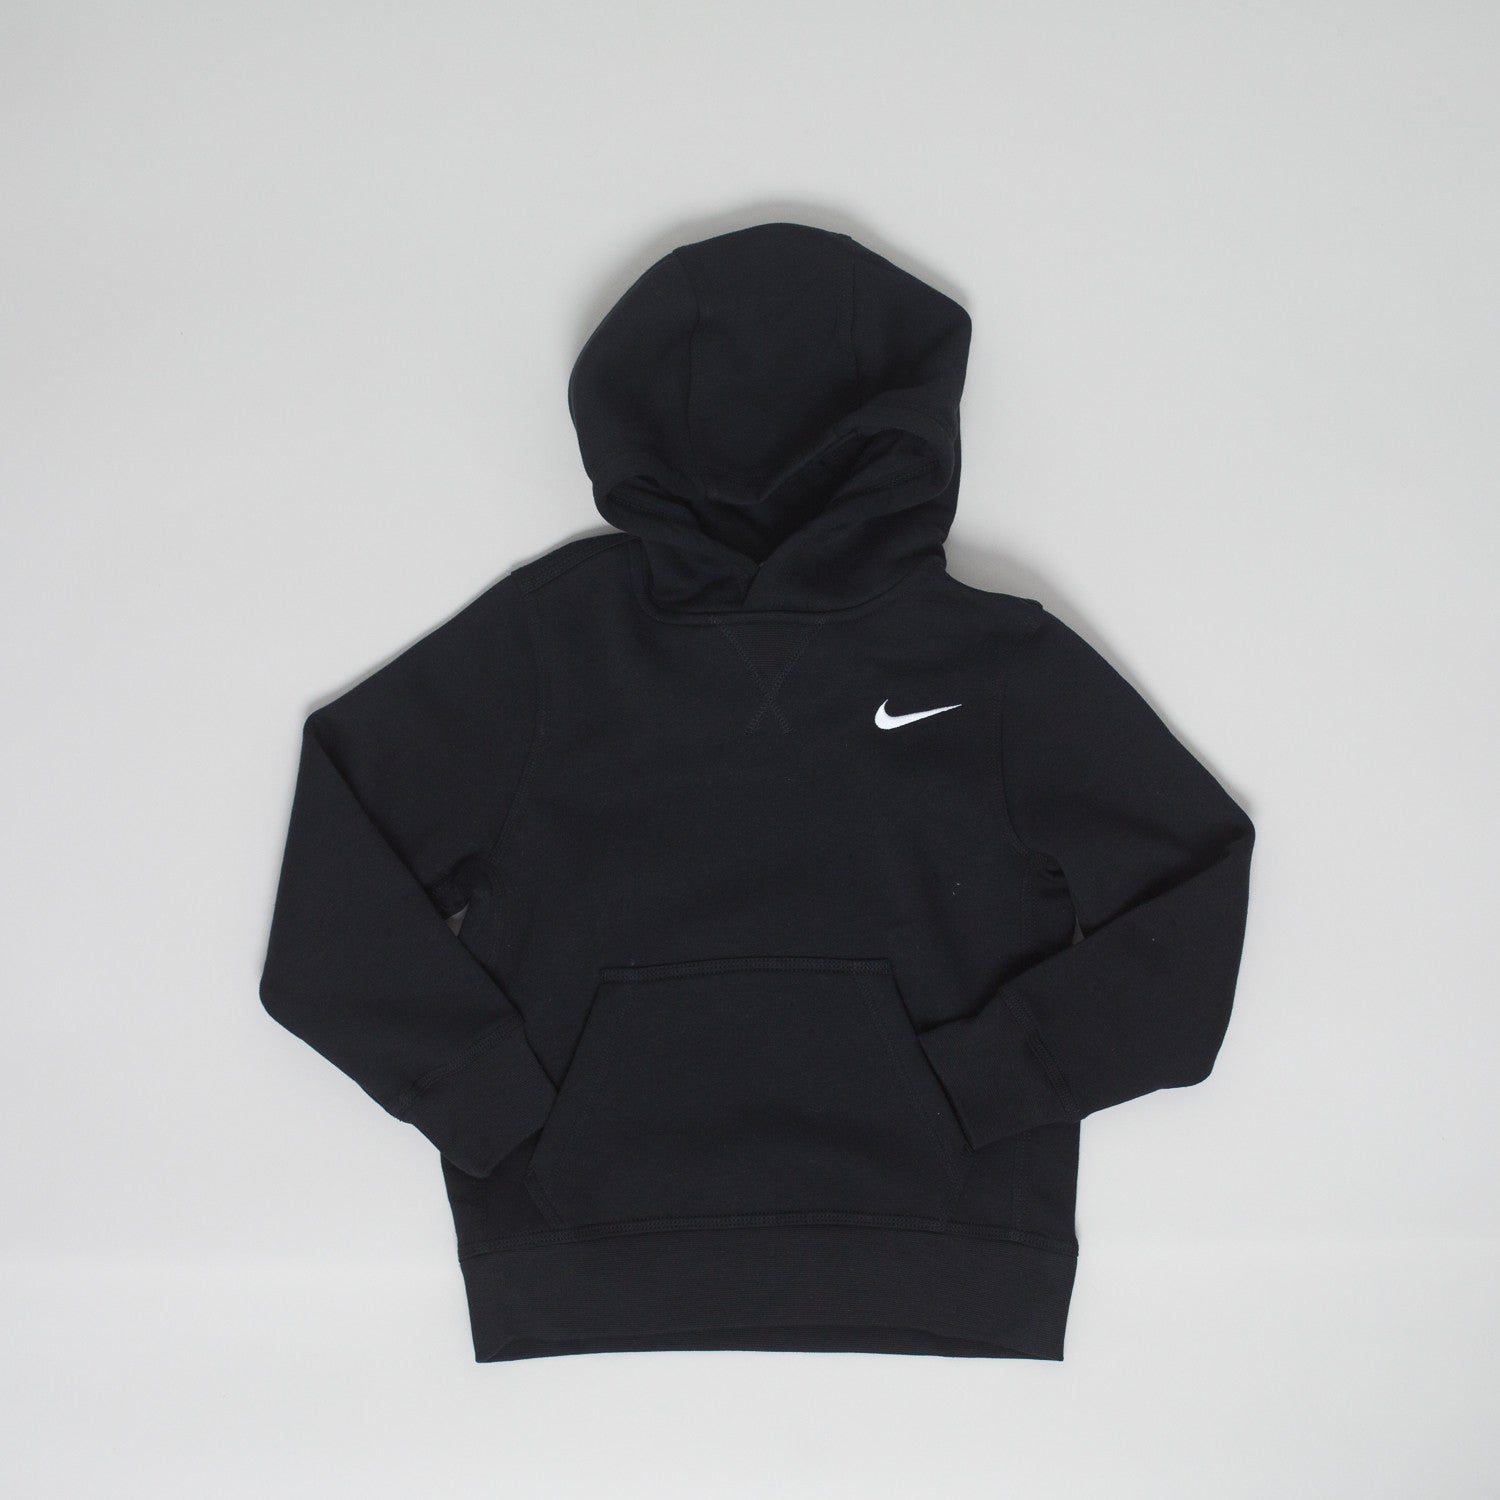 Nike brushed fleece hoodie - black - KID - 1